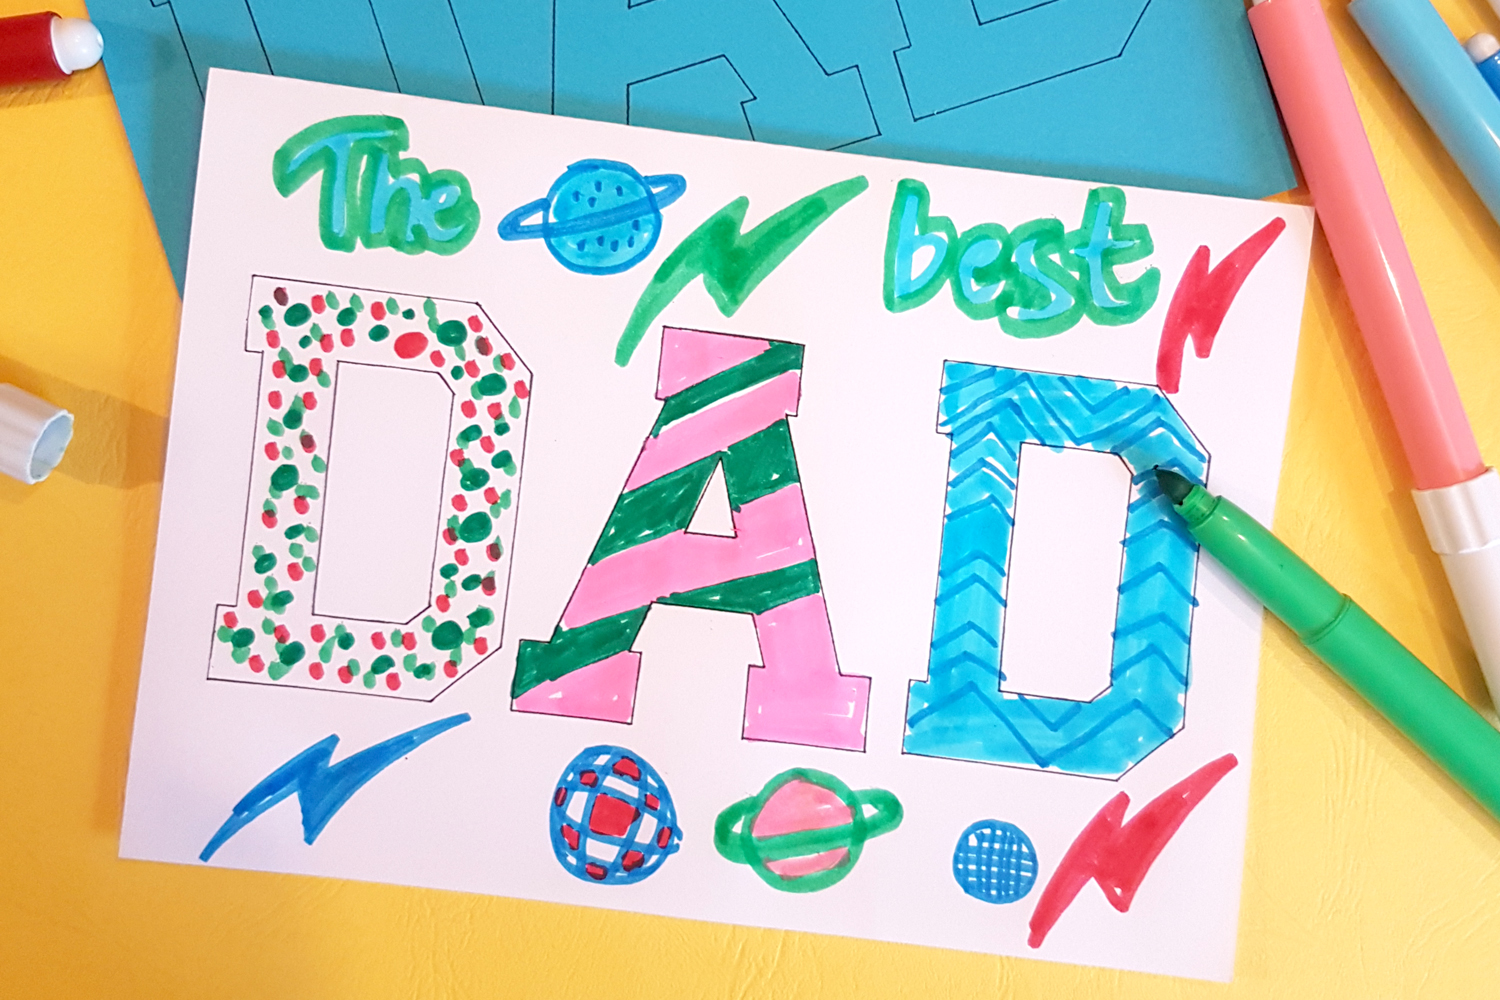 diy father's day cards made by kids